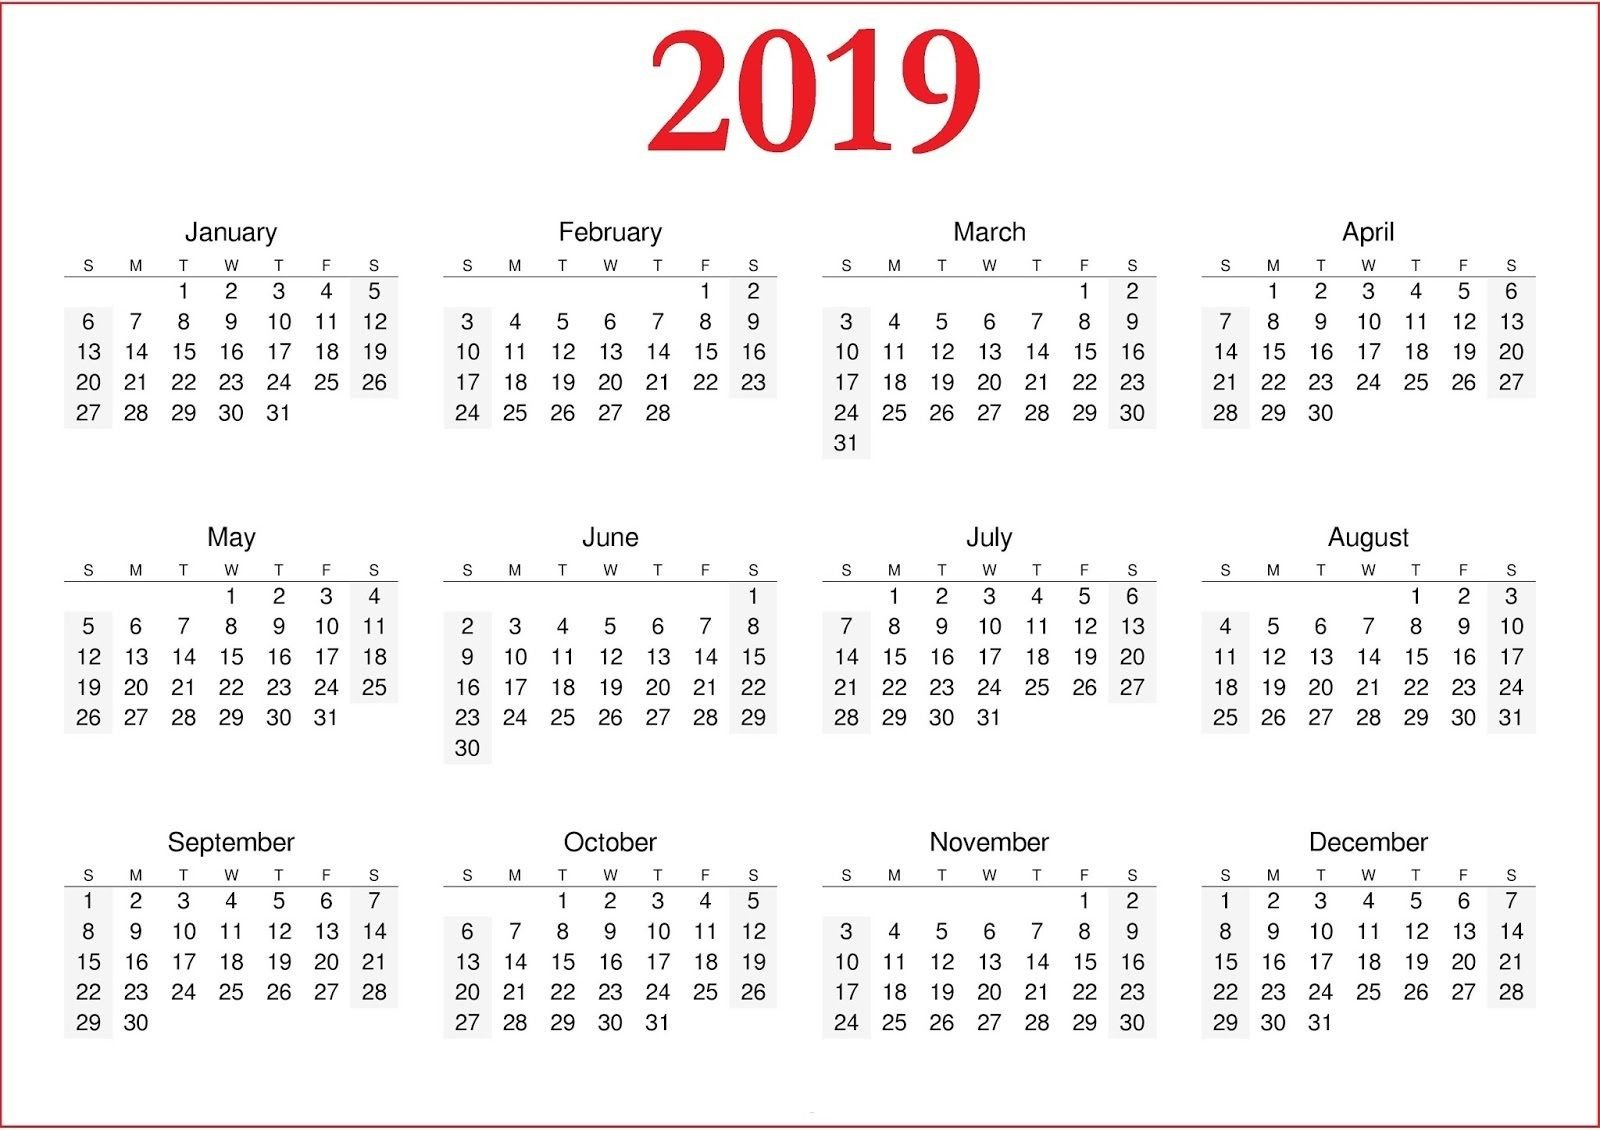 2019 Calendar Printable Nz | Yearly Calendar In One Page | Printable Calendar 2019 Nz